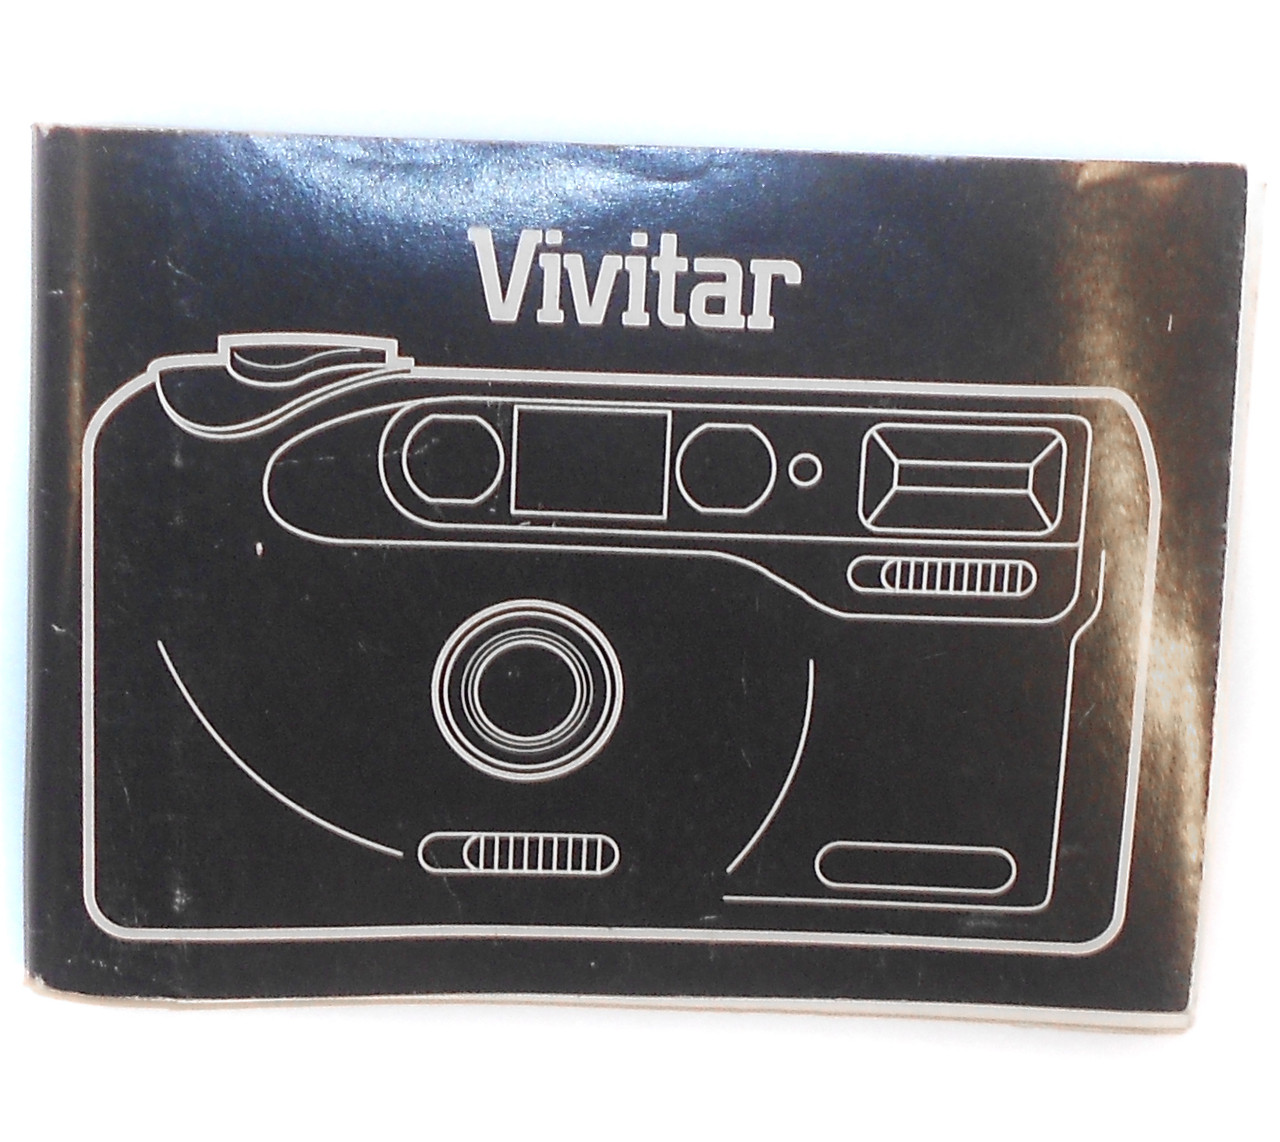 Vivitar 3700 electronic flash with manual for canon cameras — f.